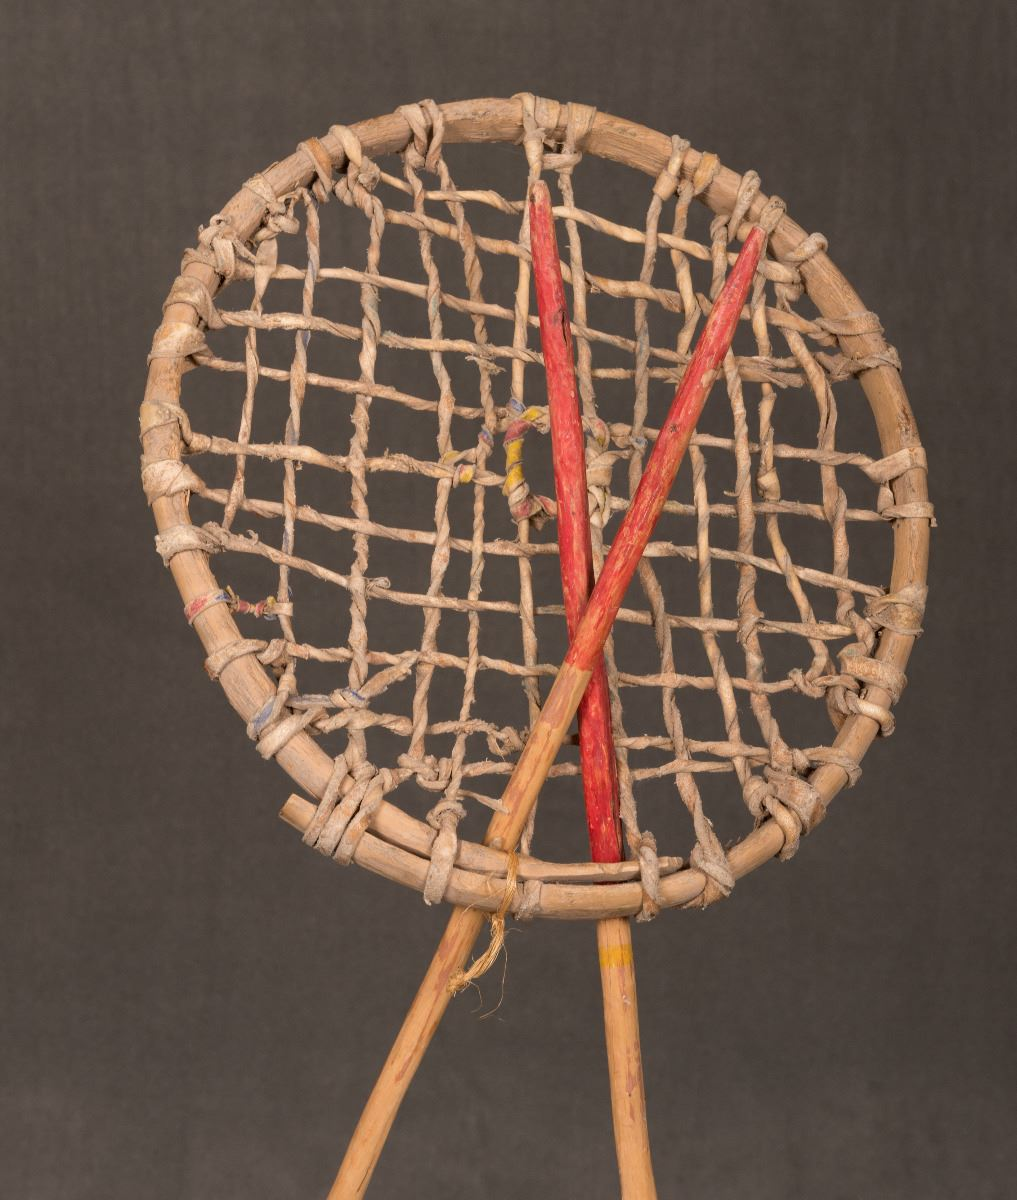 Cheyenne hoop game for Cheyenne tribe arts and crafts